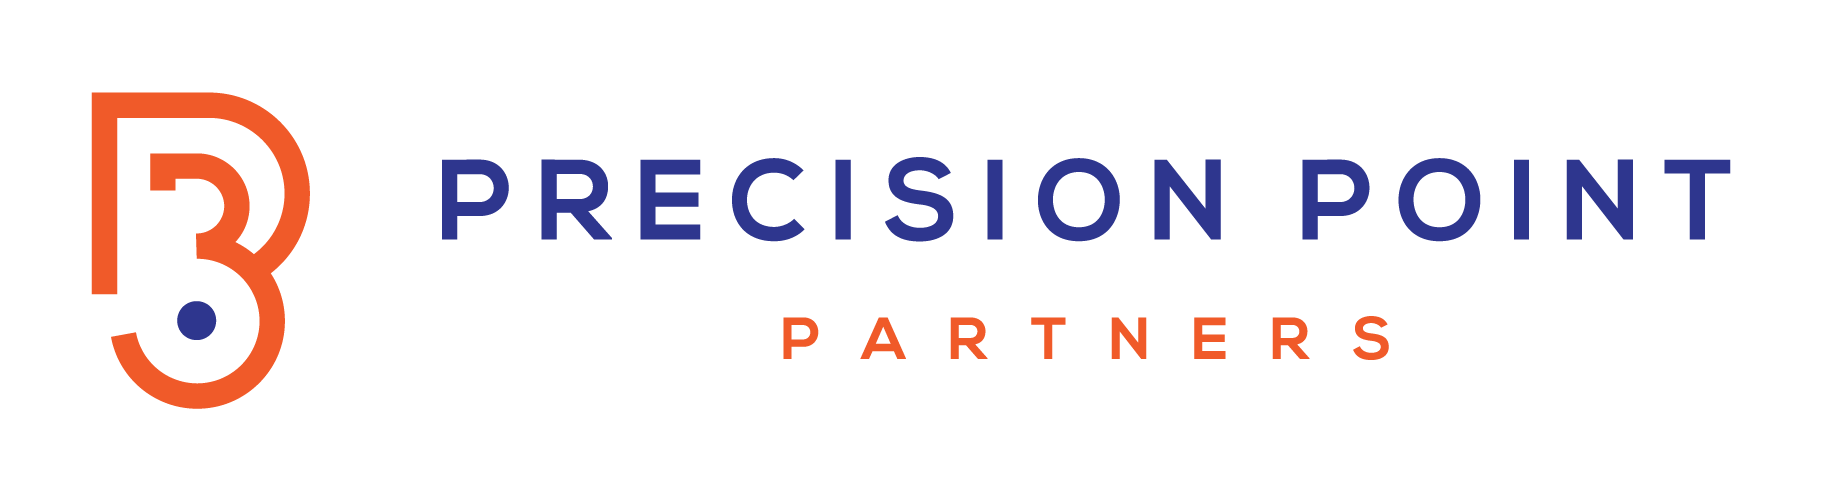 Precision Point Partners